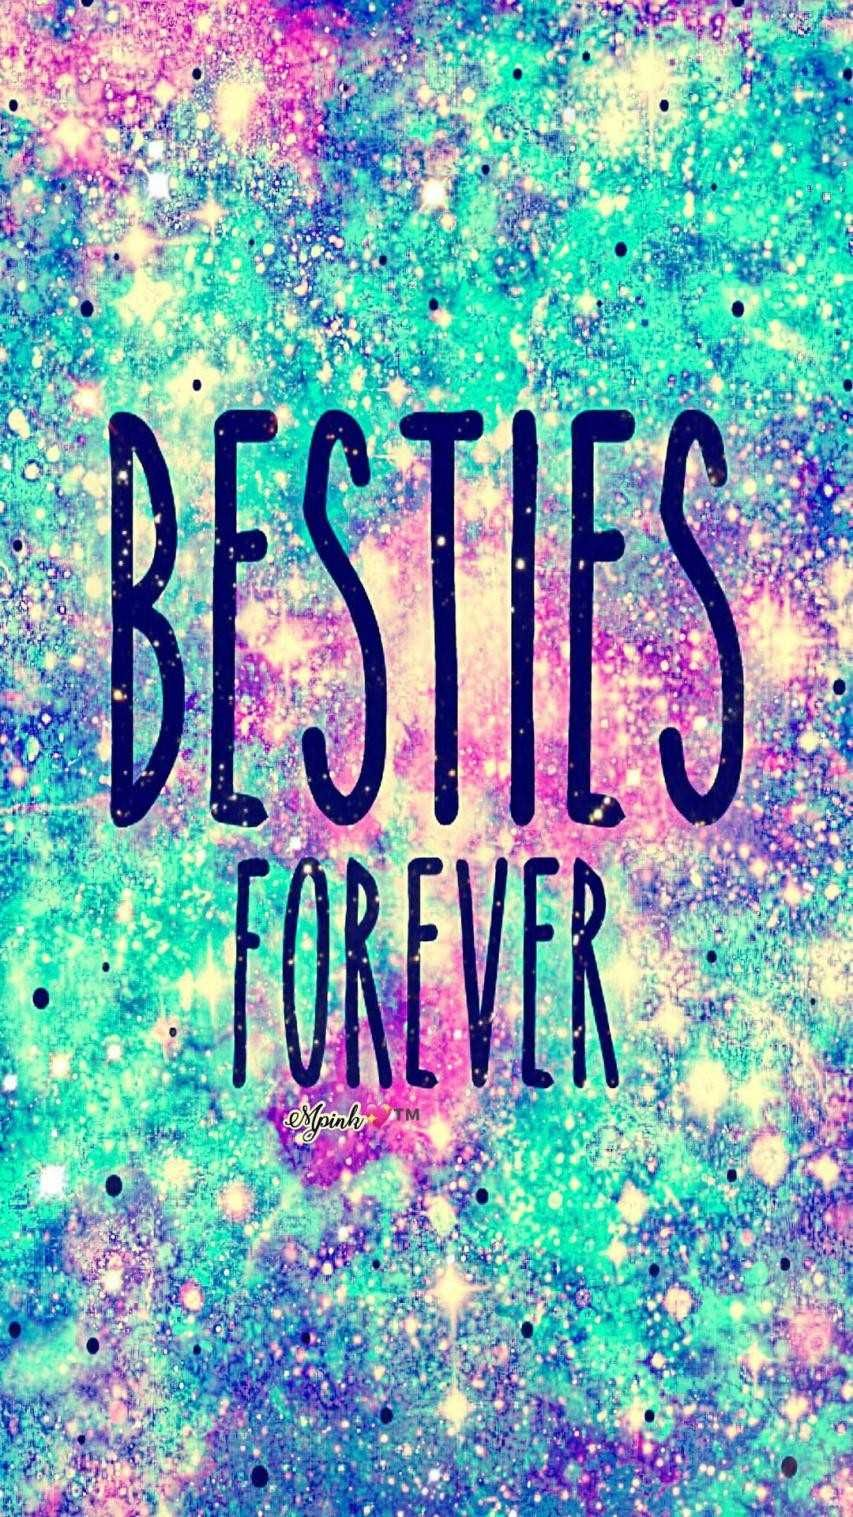 Glitter And Unicorns Wallpapers Top Free Glitter And Unicorns Backgrounds Wallpaperaccess In 2021 Besties Forever Galaxy Wallpaper Best Friend Wallpaper